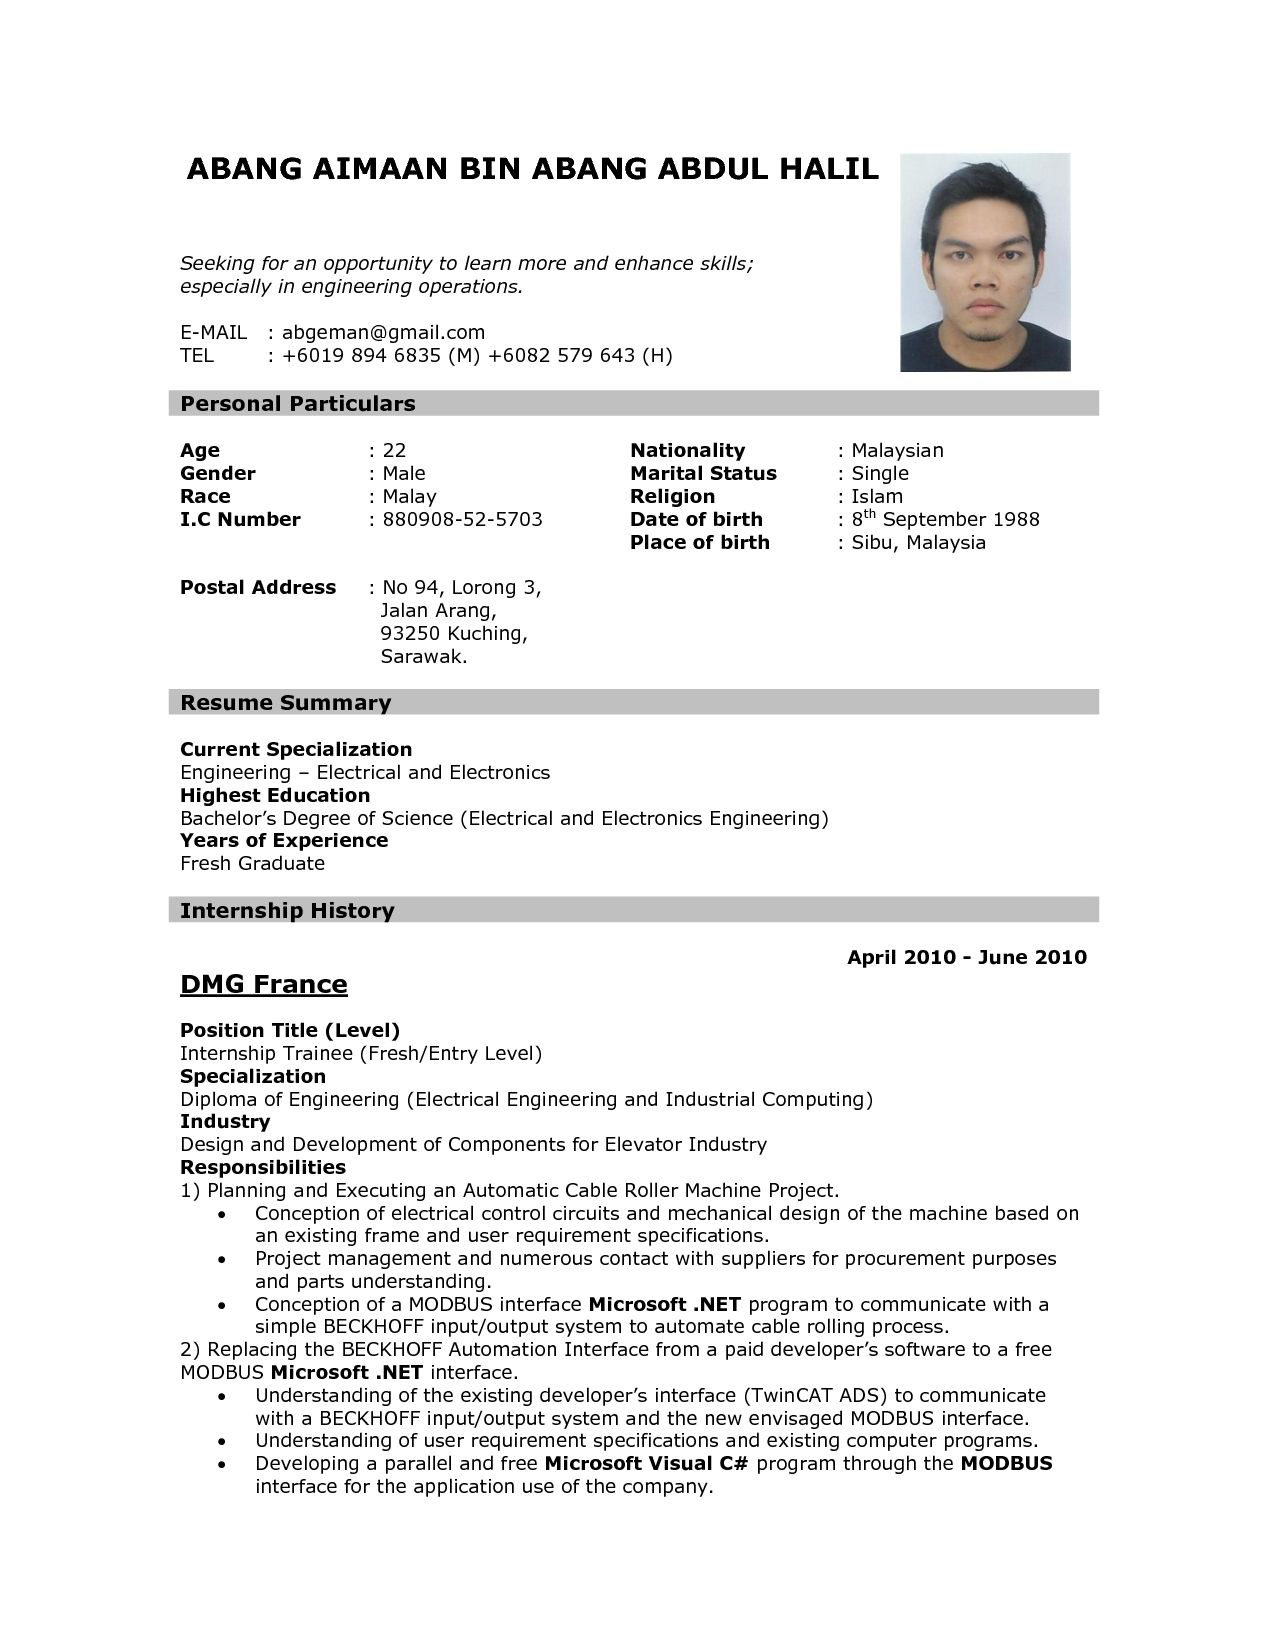 Format Of A Resume For Job Application Nice Sample Resume For Applying Job  Example  Pinterest  Sample .